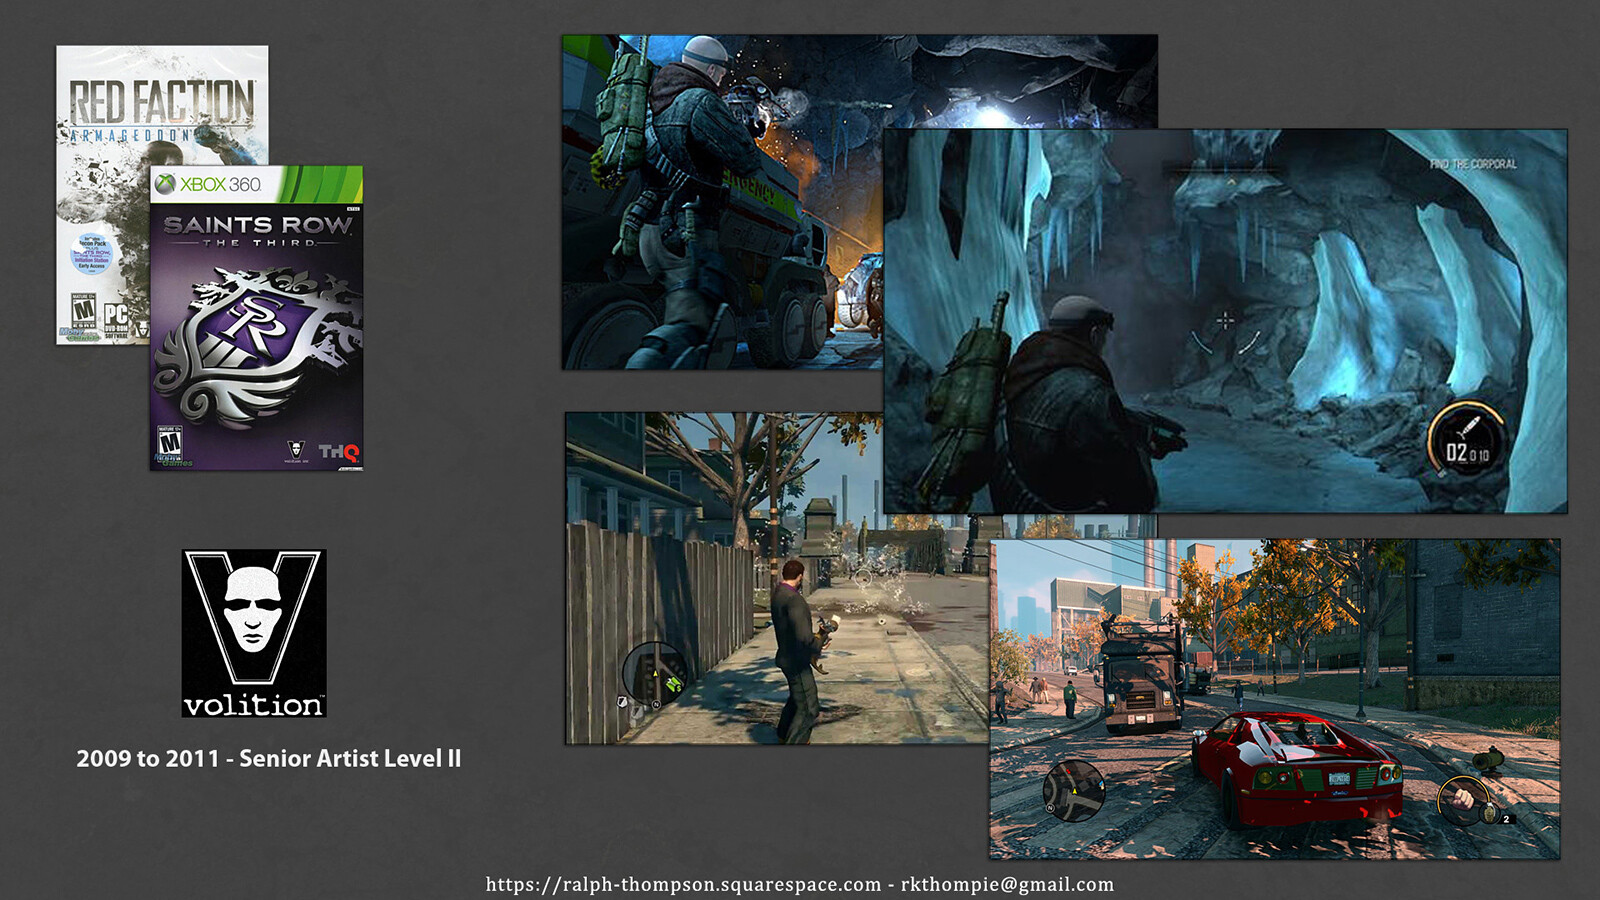 Shots from the two titles I worked on while at Volition, Red Faction and Saints Row The Third.